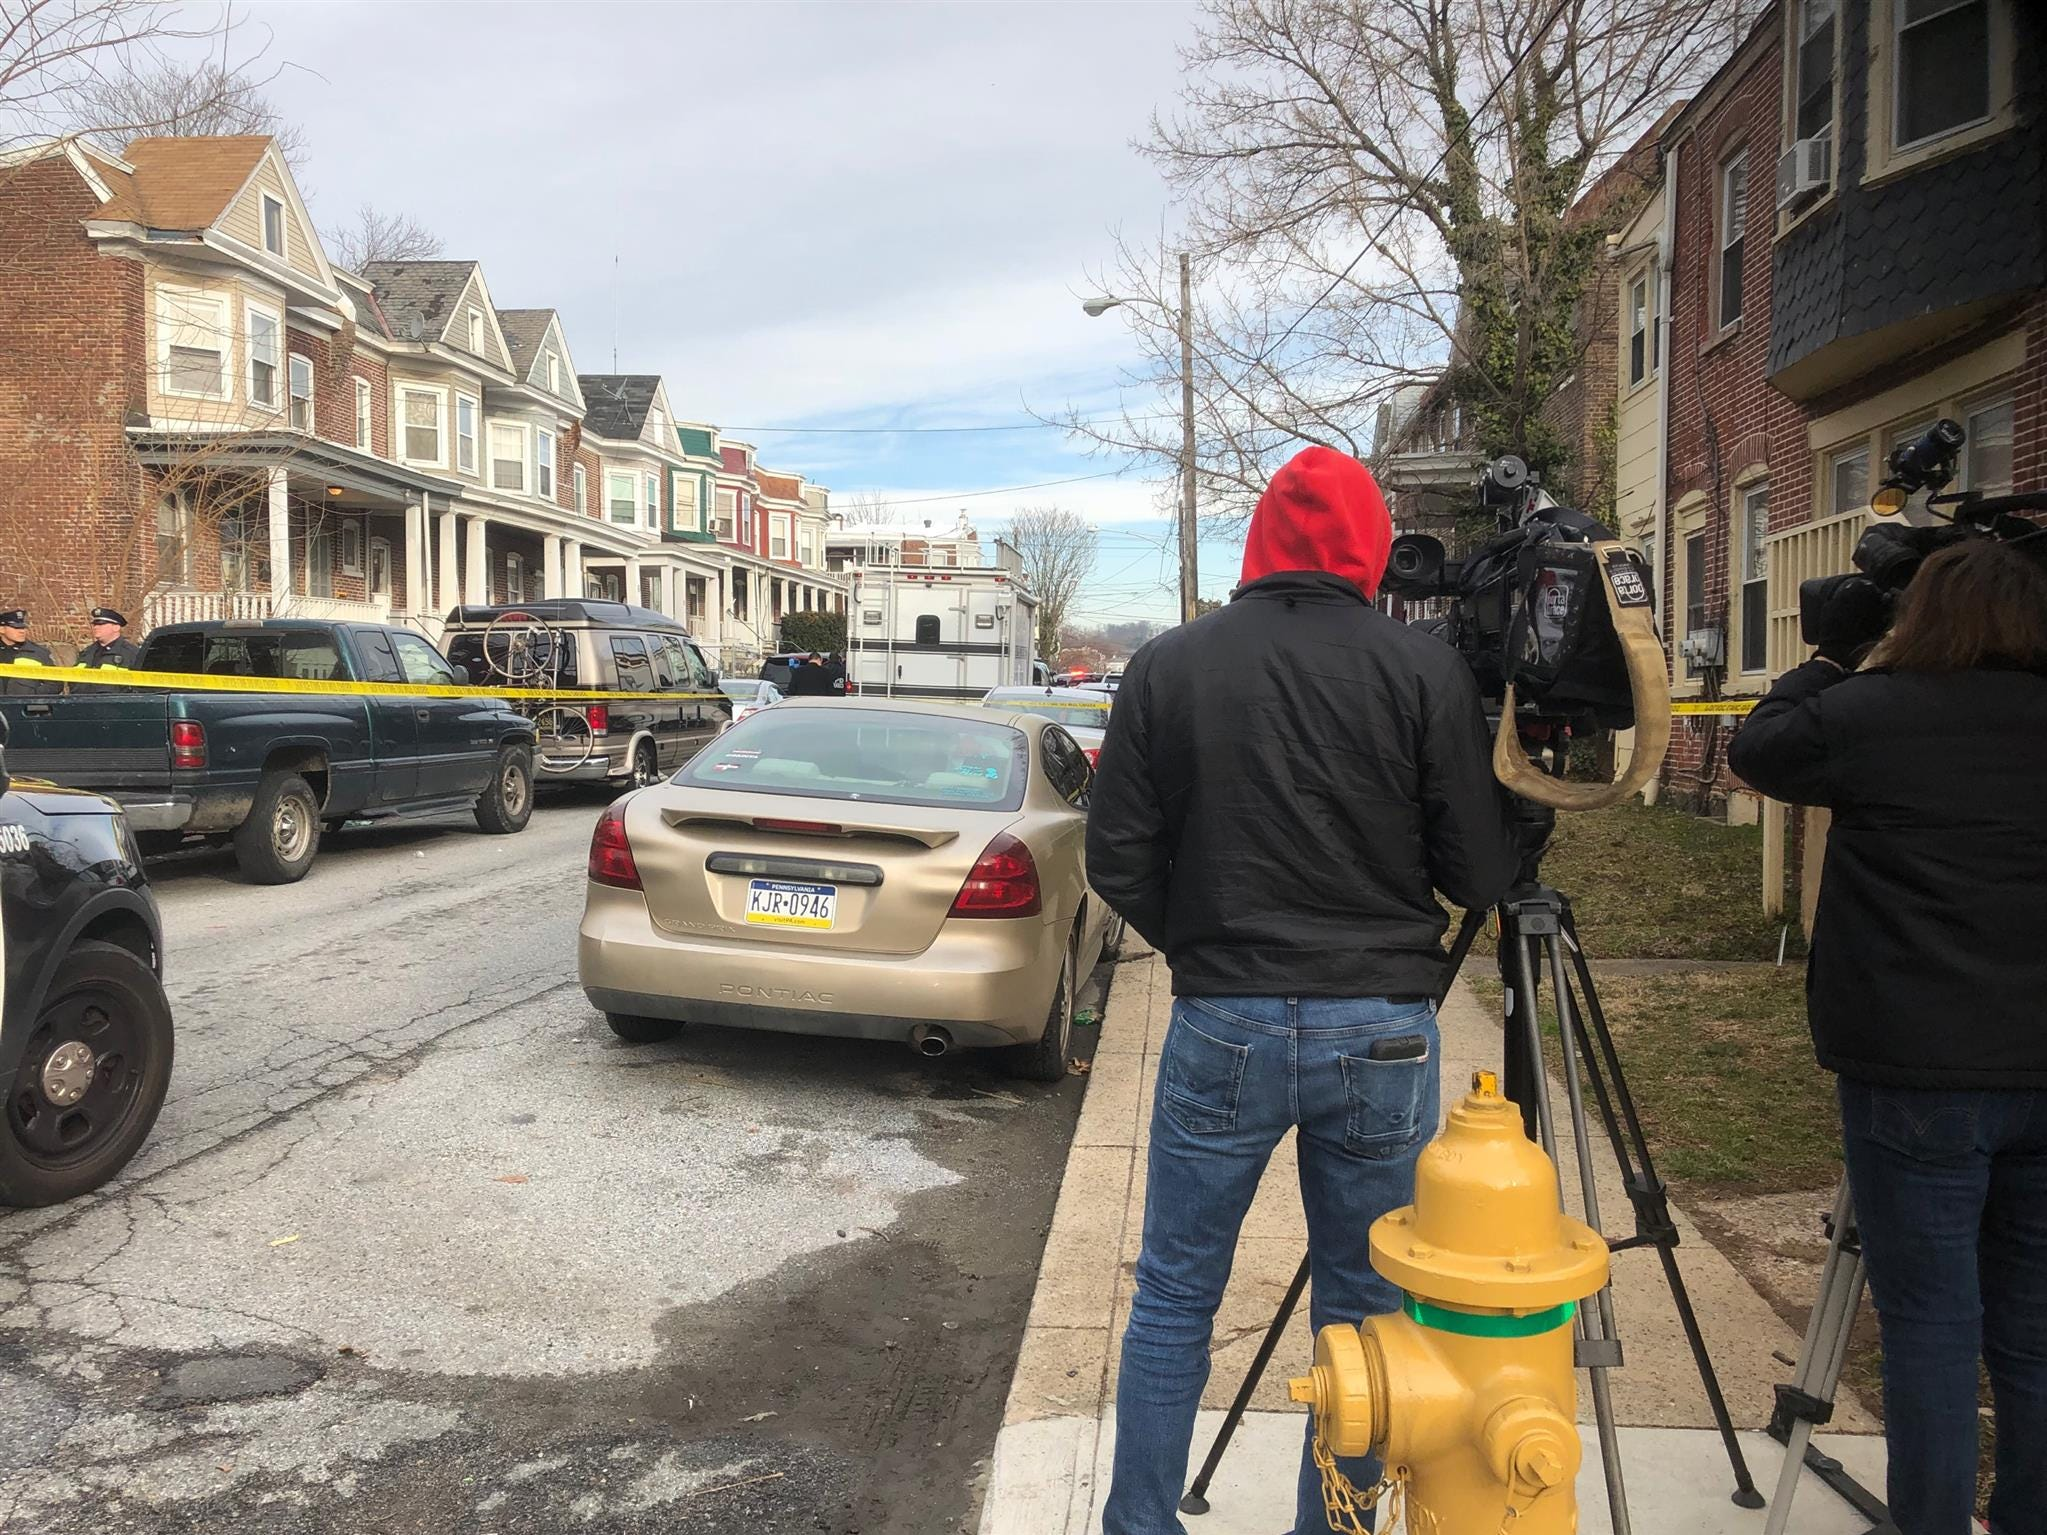 Police have the scene of a double homicide taped off on West 26th Street in Wilmington on Monday, March 11, 2019, while neighbors and news crews wait nearby for details.